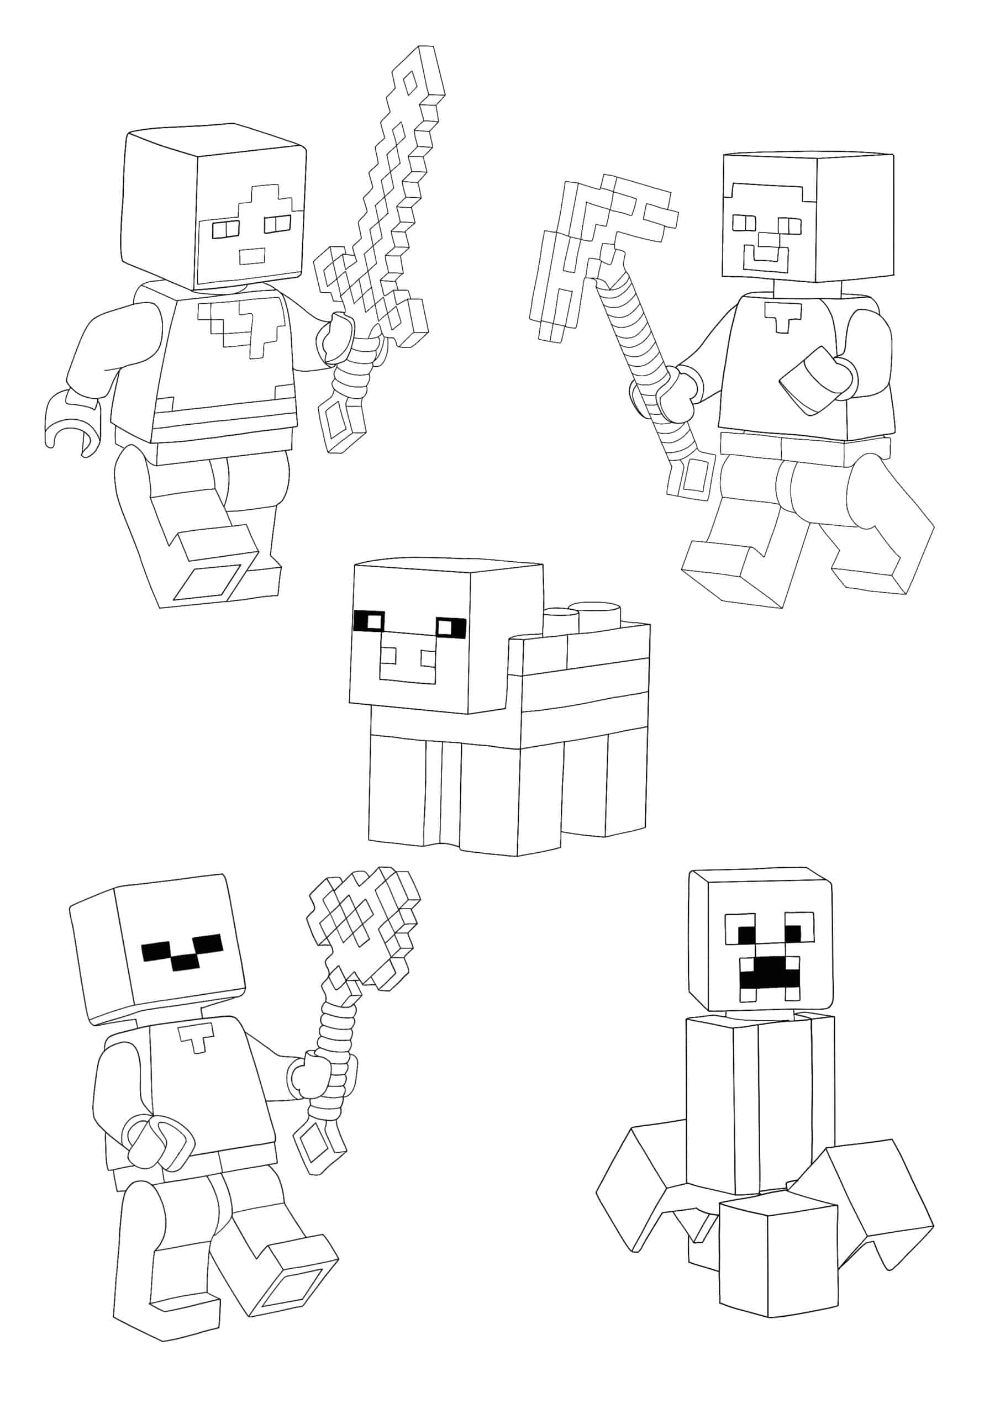 Minecraft Lego Characters Coloring Pages 2 Free Coloring Sheets 2021 In 2021 Coloring Pages Free Coloring Sheets Minecraft Coloring Pages